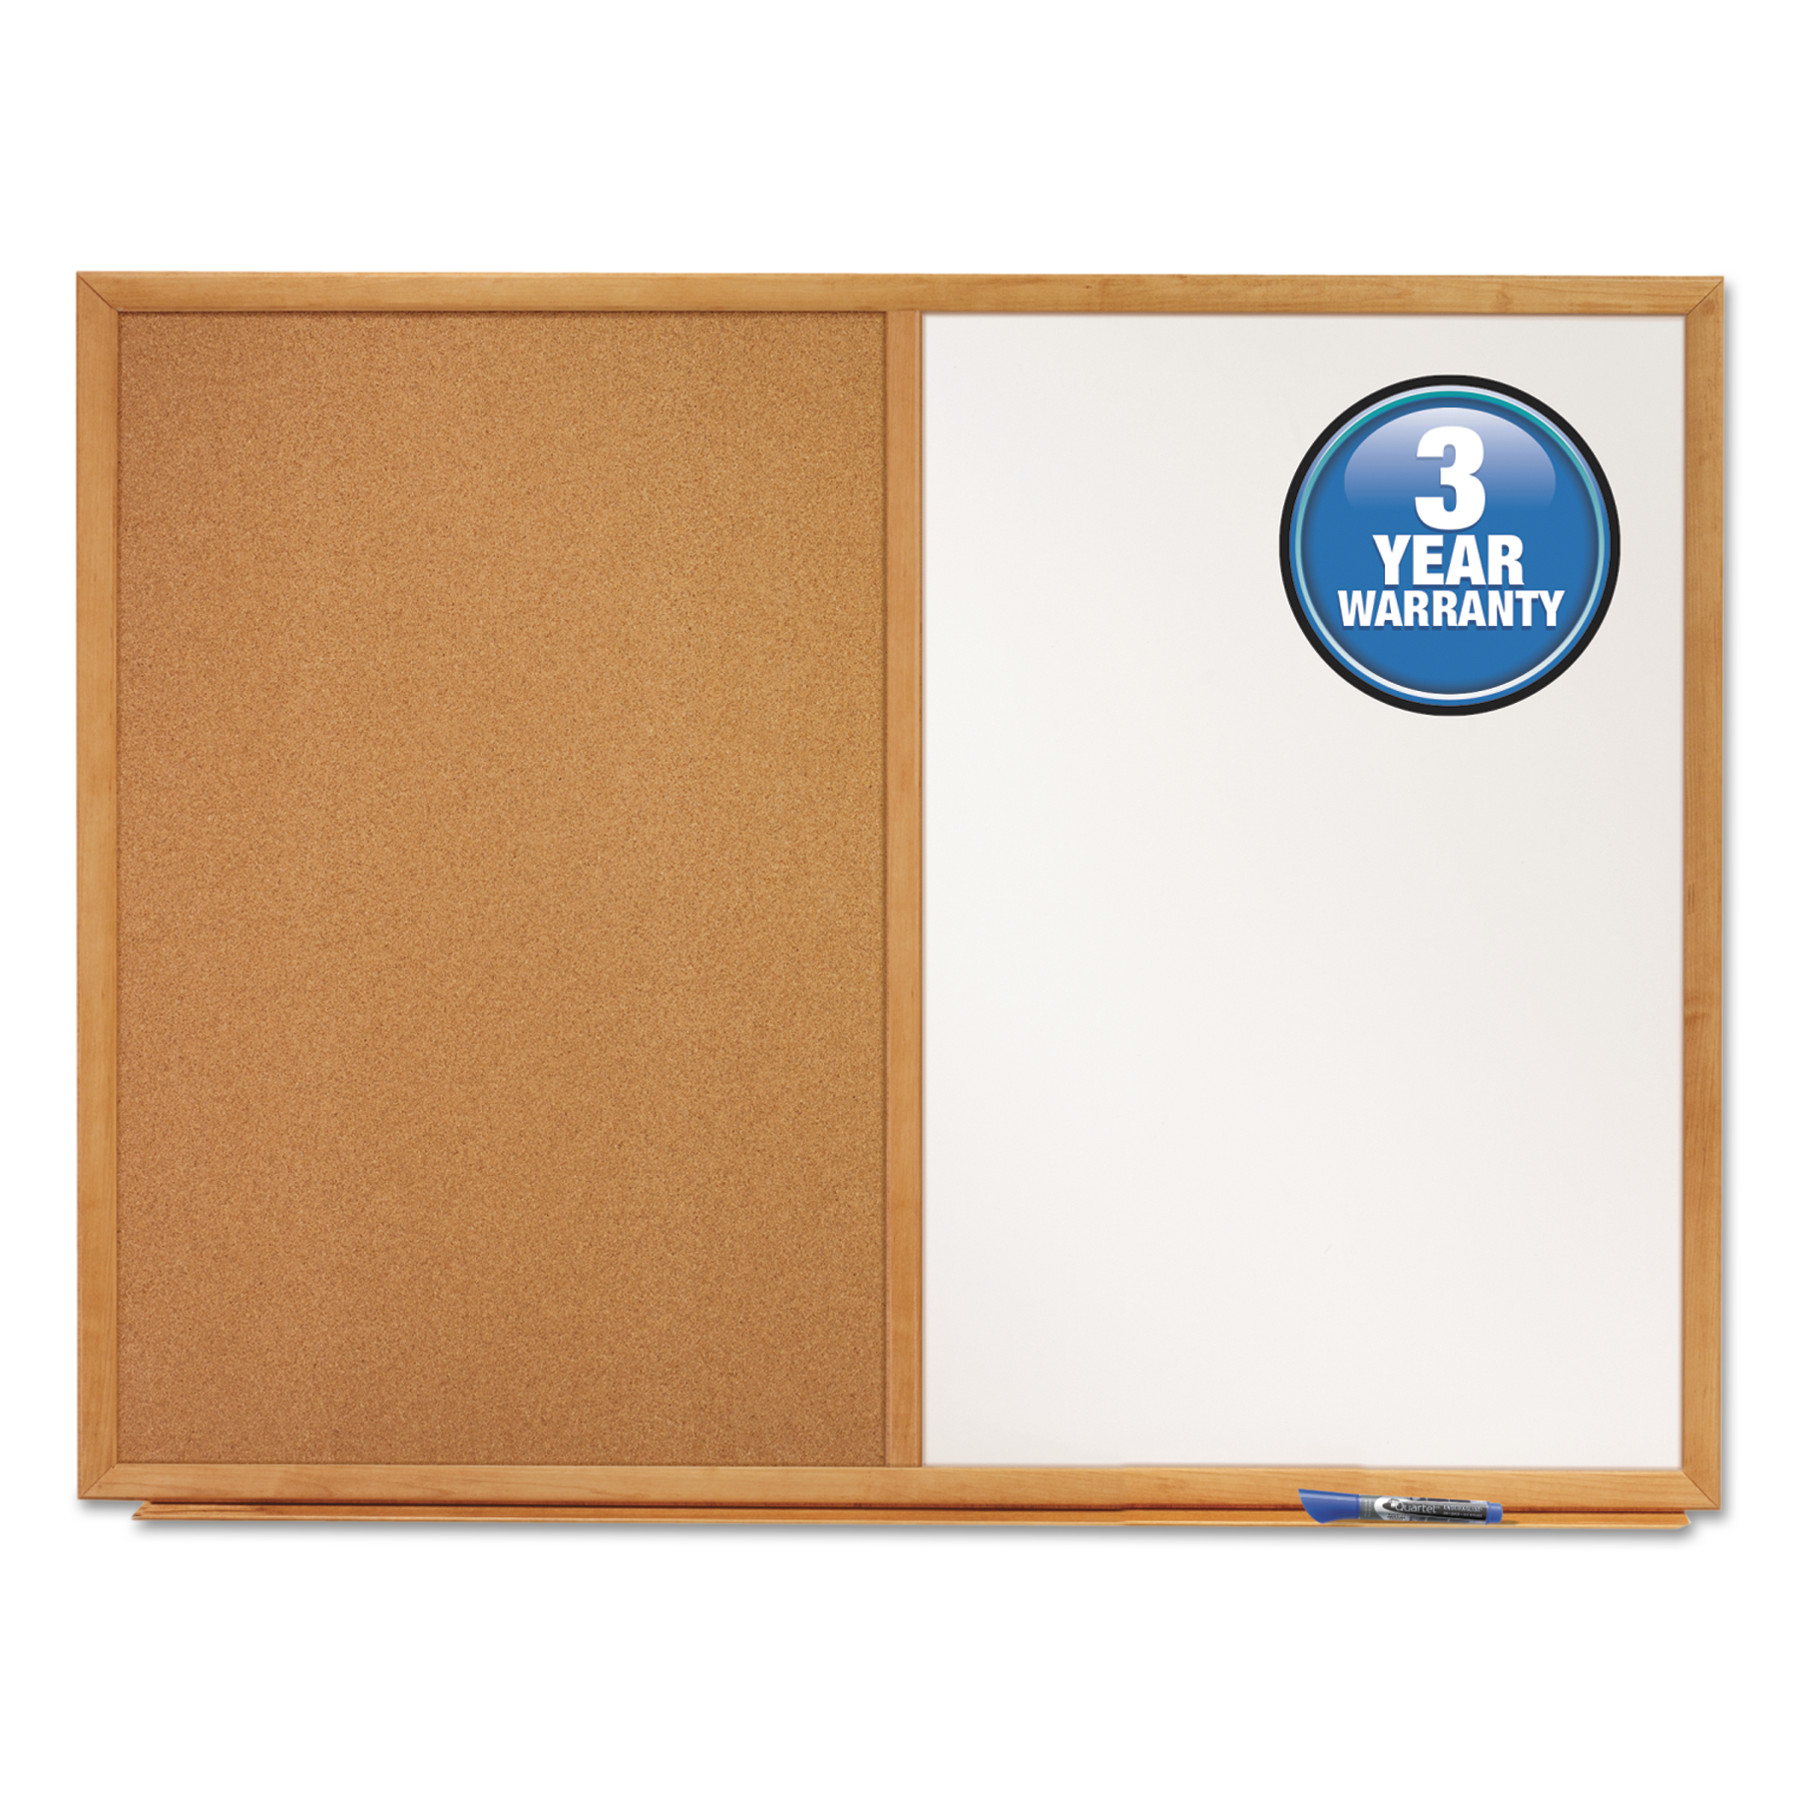 Quartet Bulletin/Dry-Erase Board, Melamine/Cork, 36 x 24, White/Brown, Oak Finish Frame -QRTS553